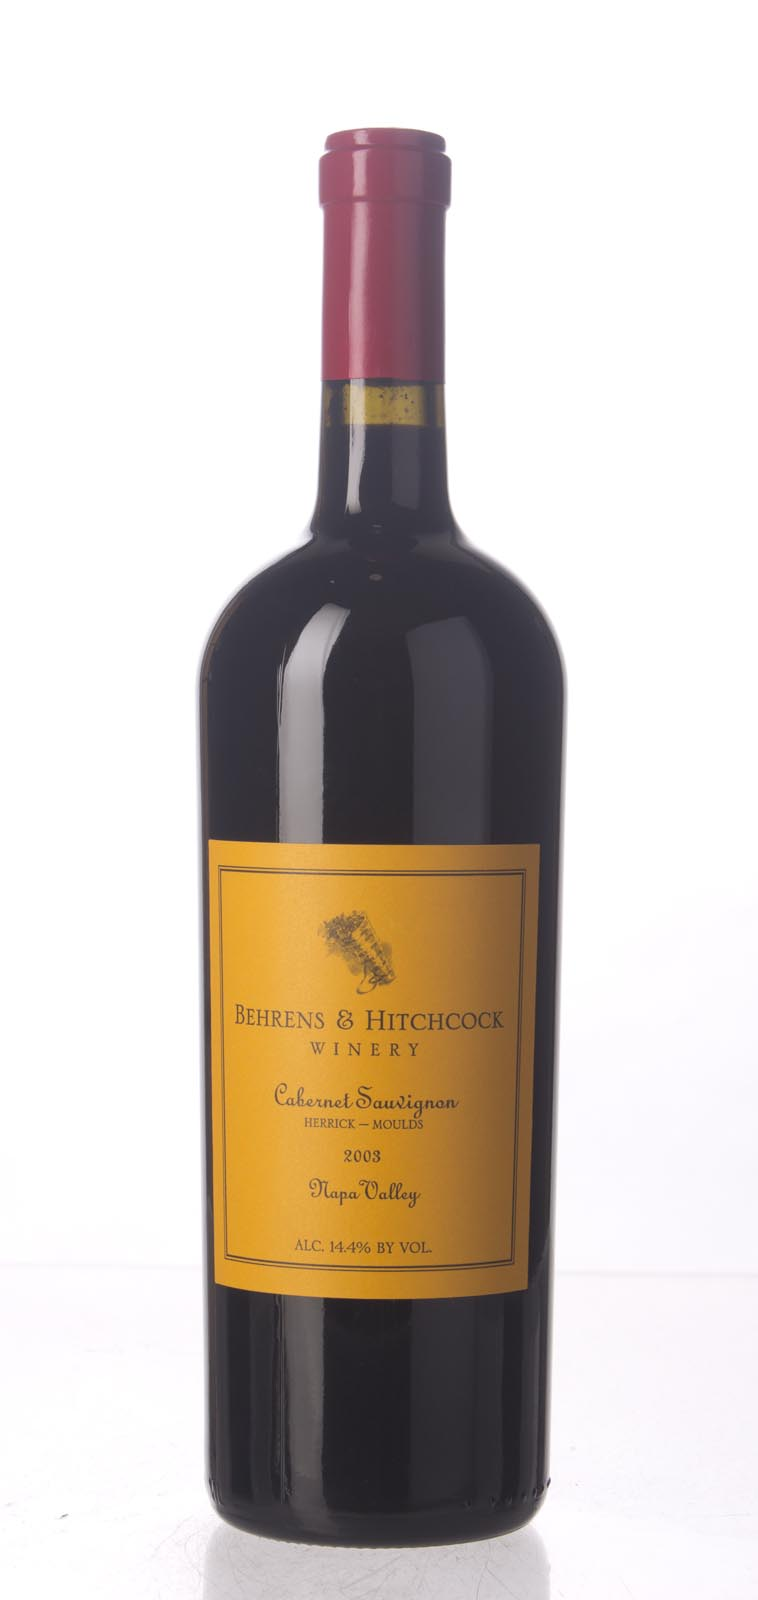 Behrens & Hitchcock Cabernet Sauvignon Herrick Moulds Vineyard 2003, 750mL (WA91+) from The BPW - Merchants of rare and fine wines.